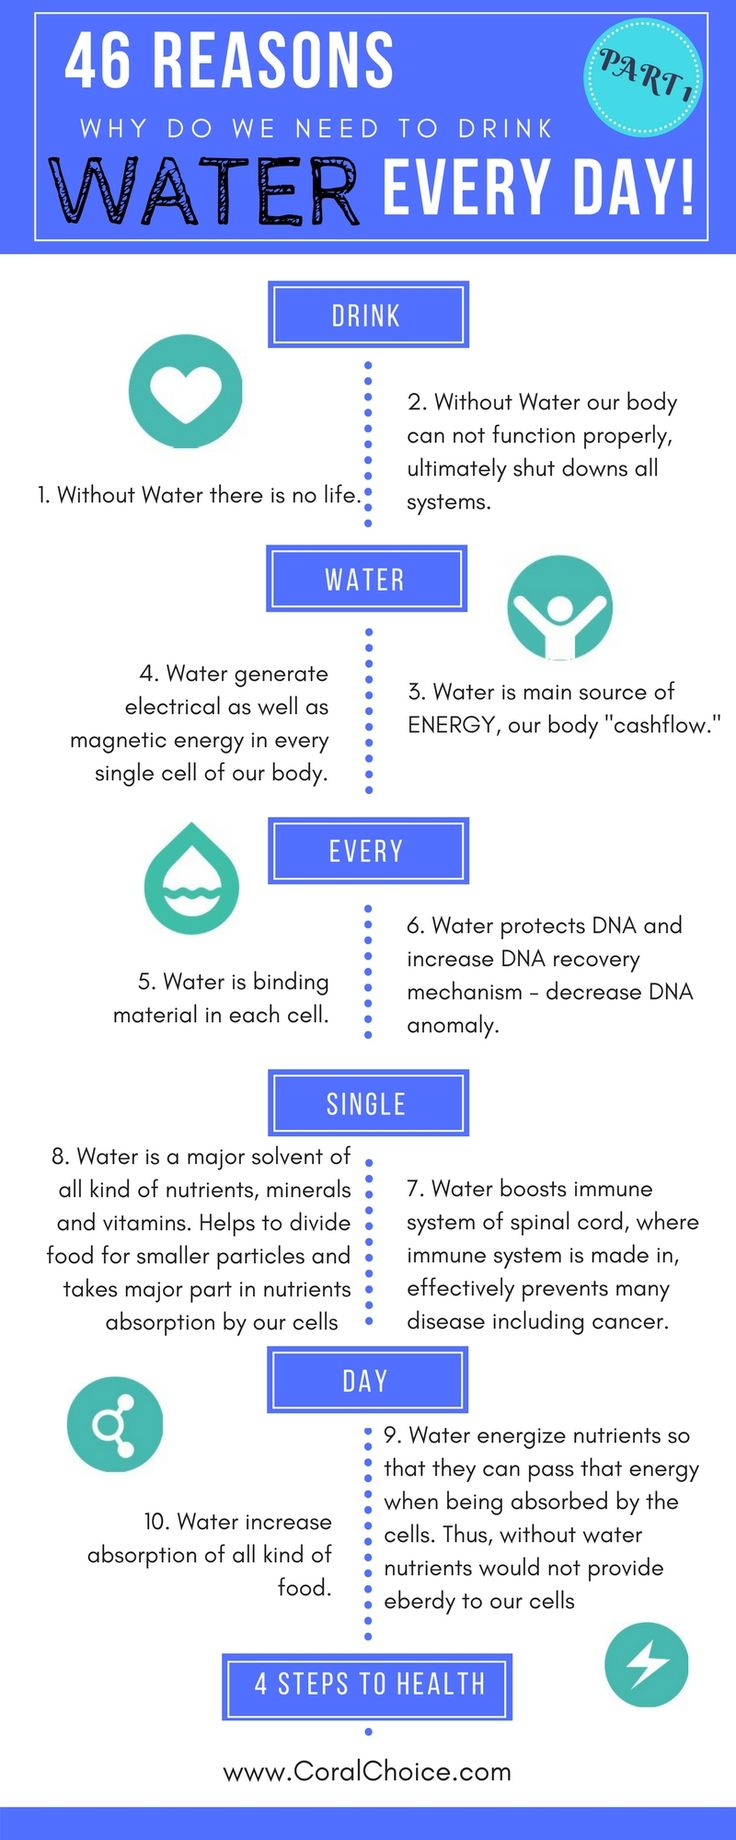 Water is essential to our Health. There are plenty of reasons why we should drink it every single day. Below you can find 46 reasons gathered through research